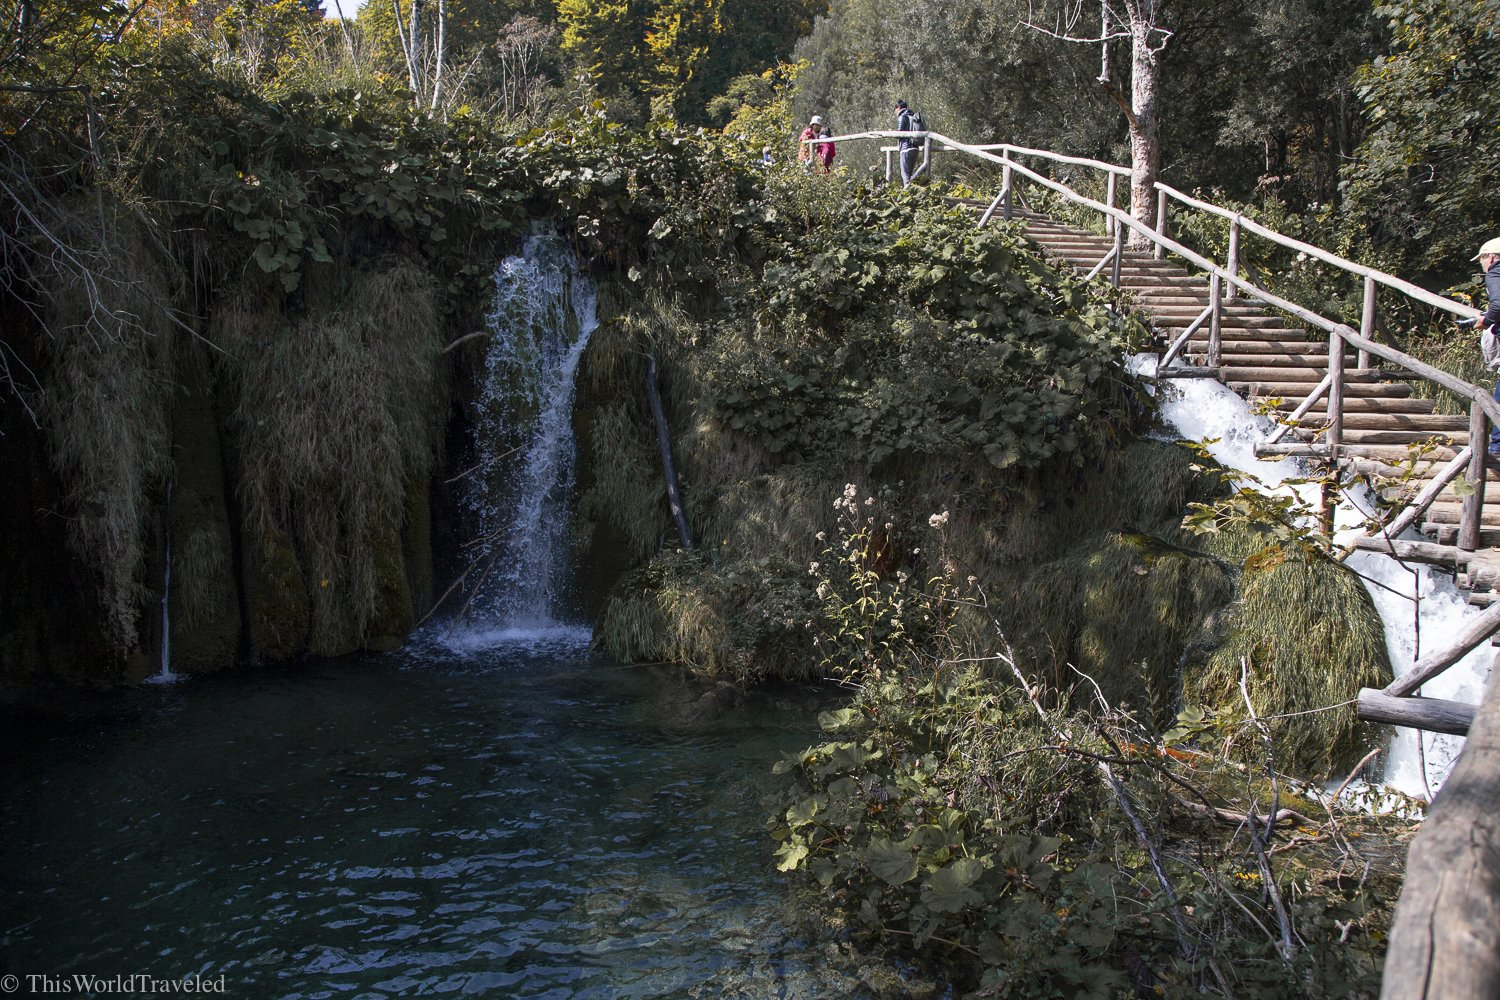 A waterfall surrounded by green trees and a boardwalk